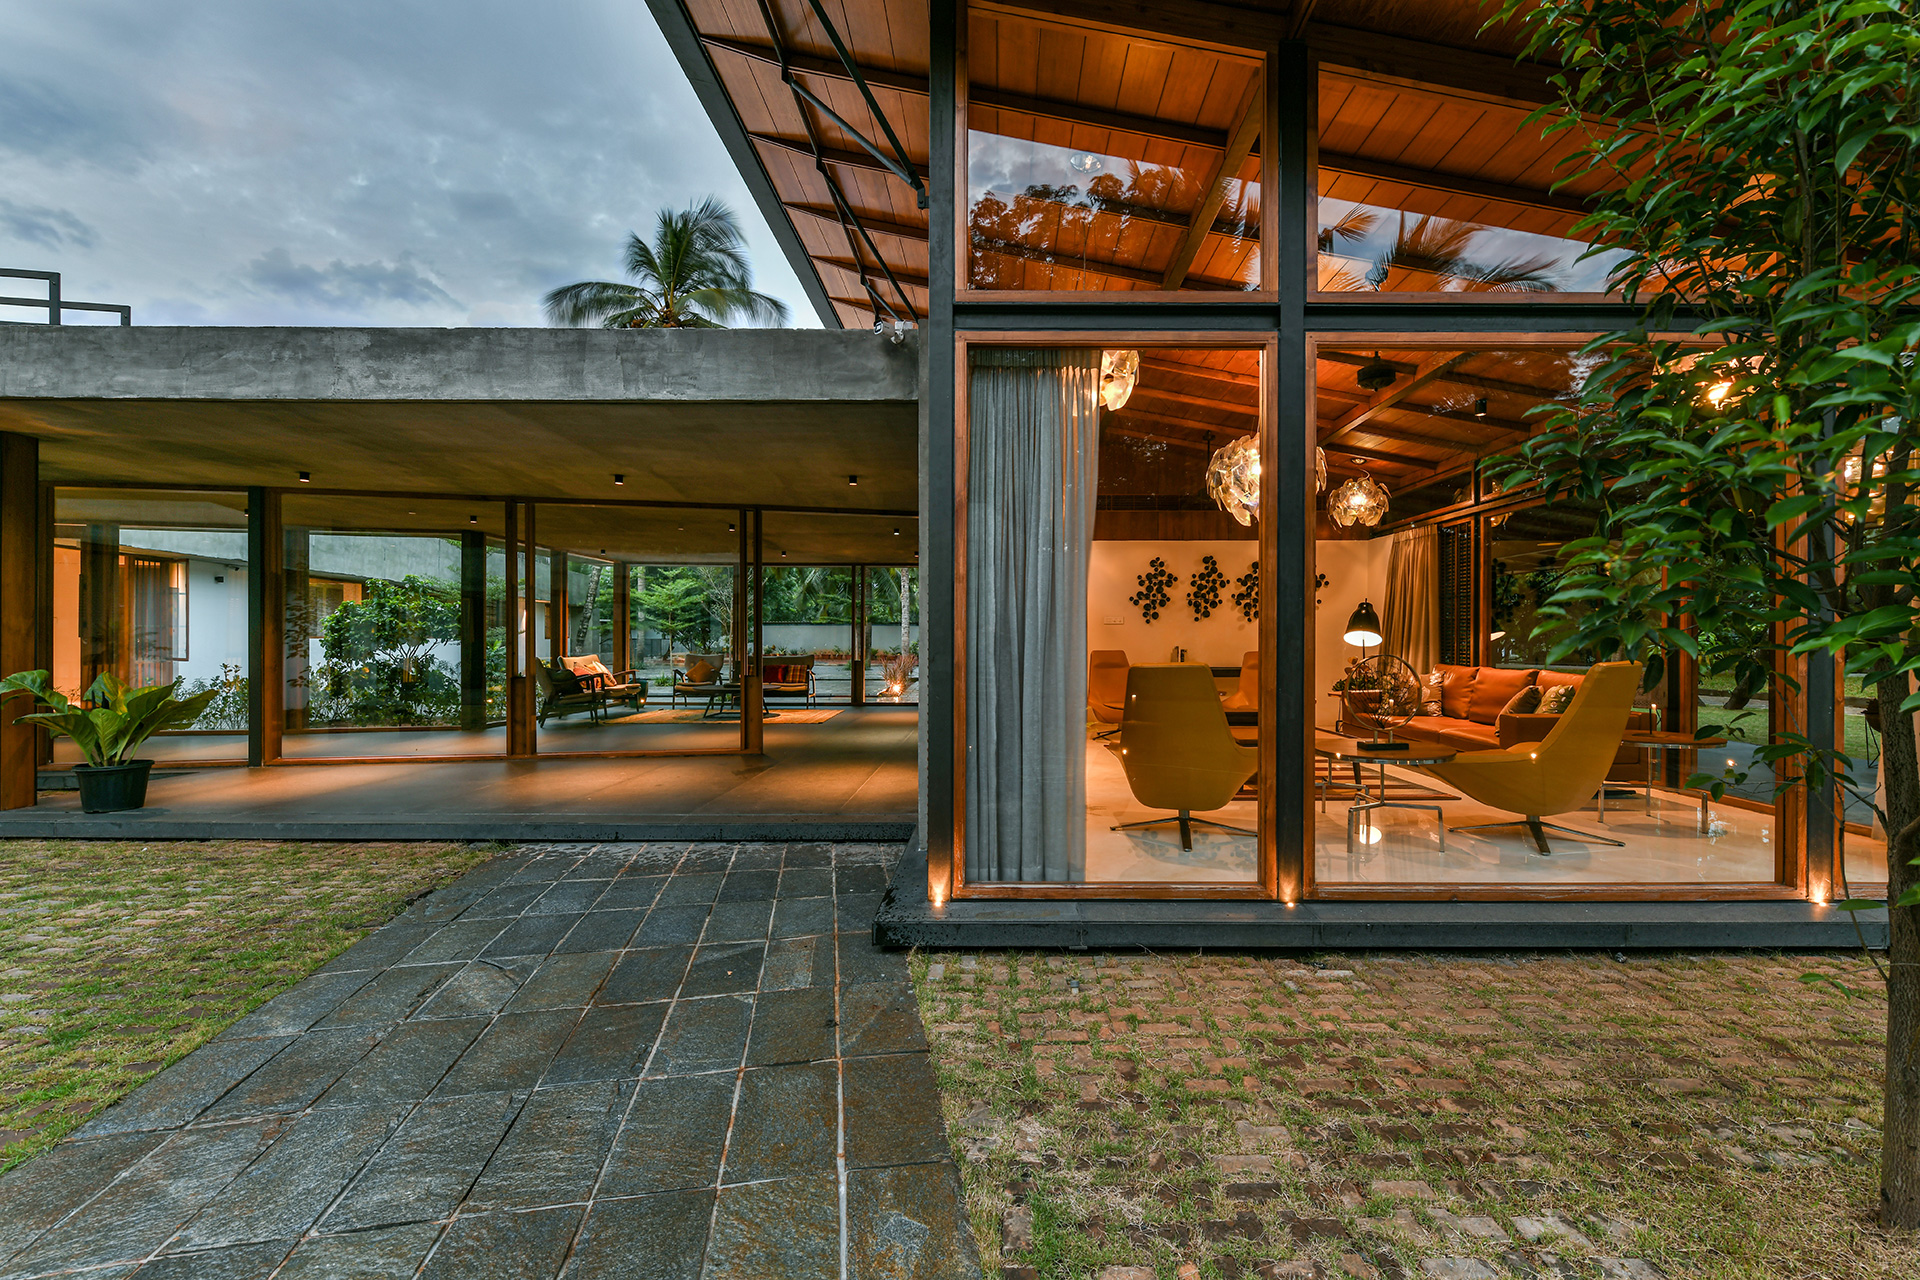 The Skew House In Kerala Blends Modern Tropical Design With Traditional Architecture